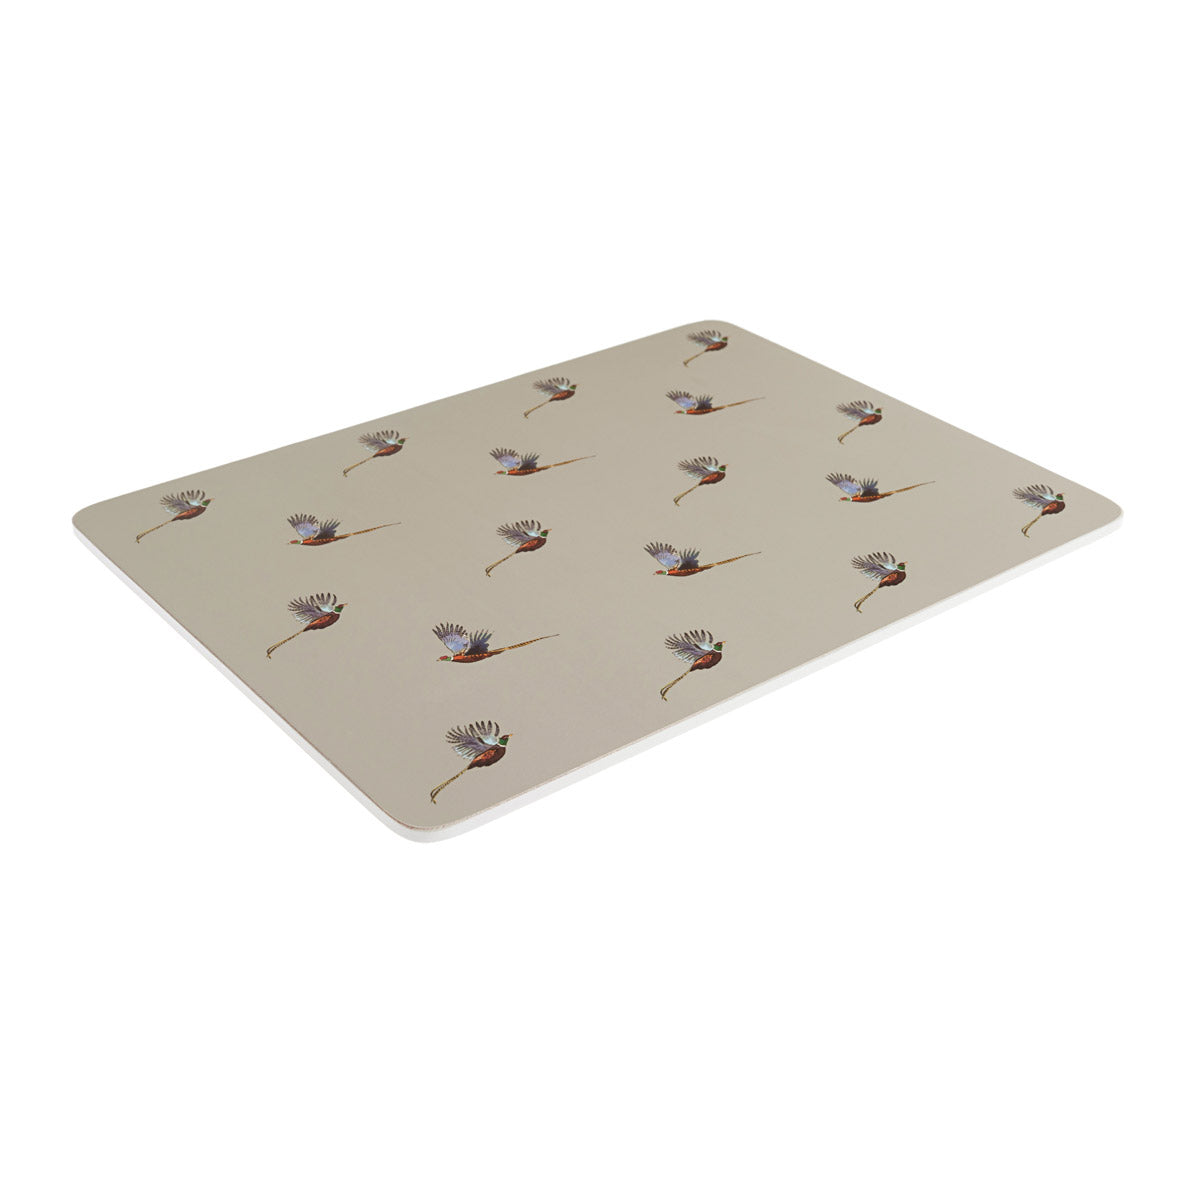 Pheasant Placemats - Set of 4